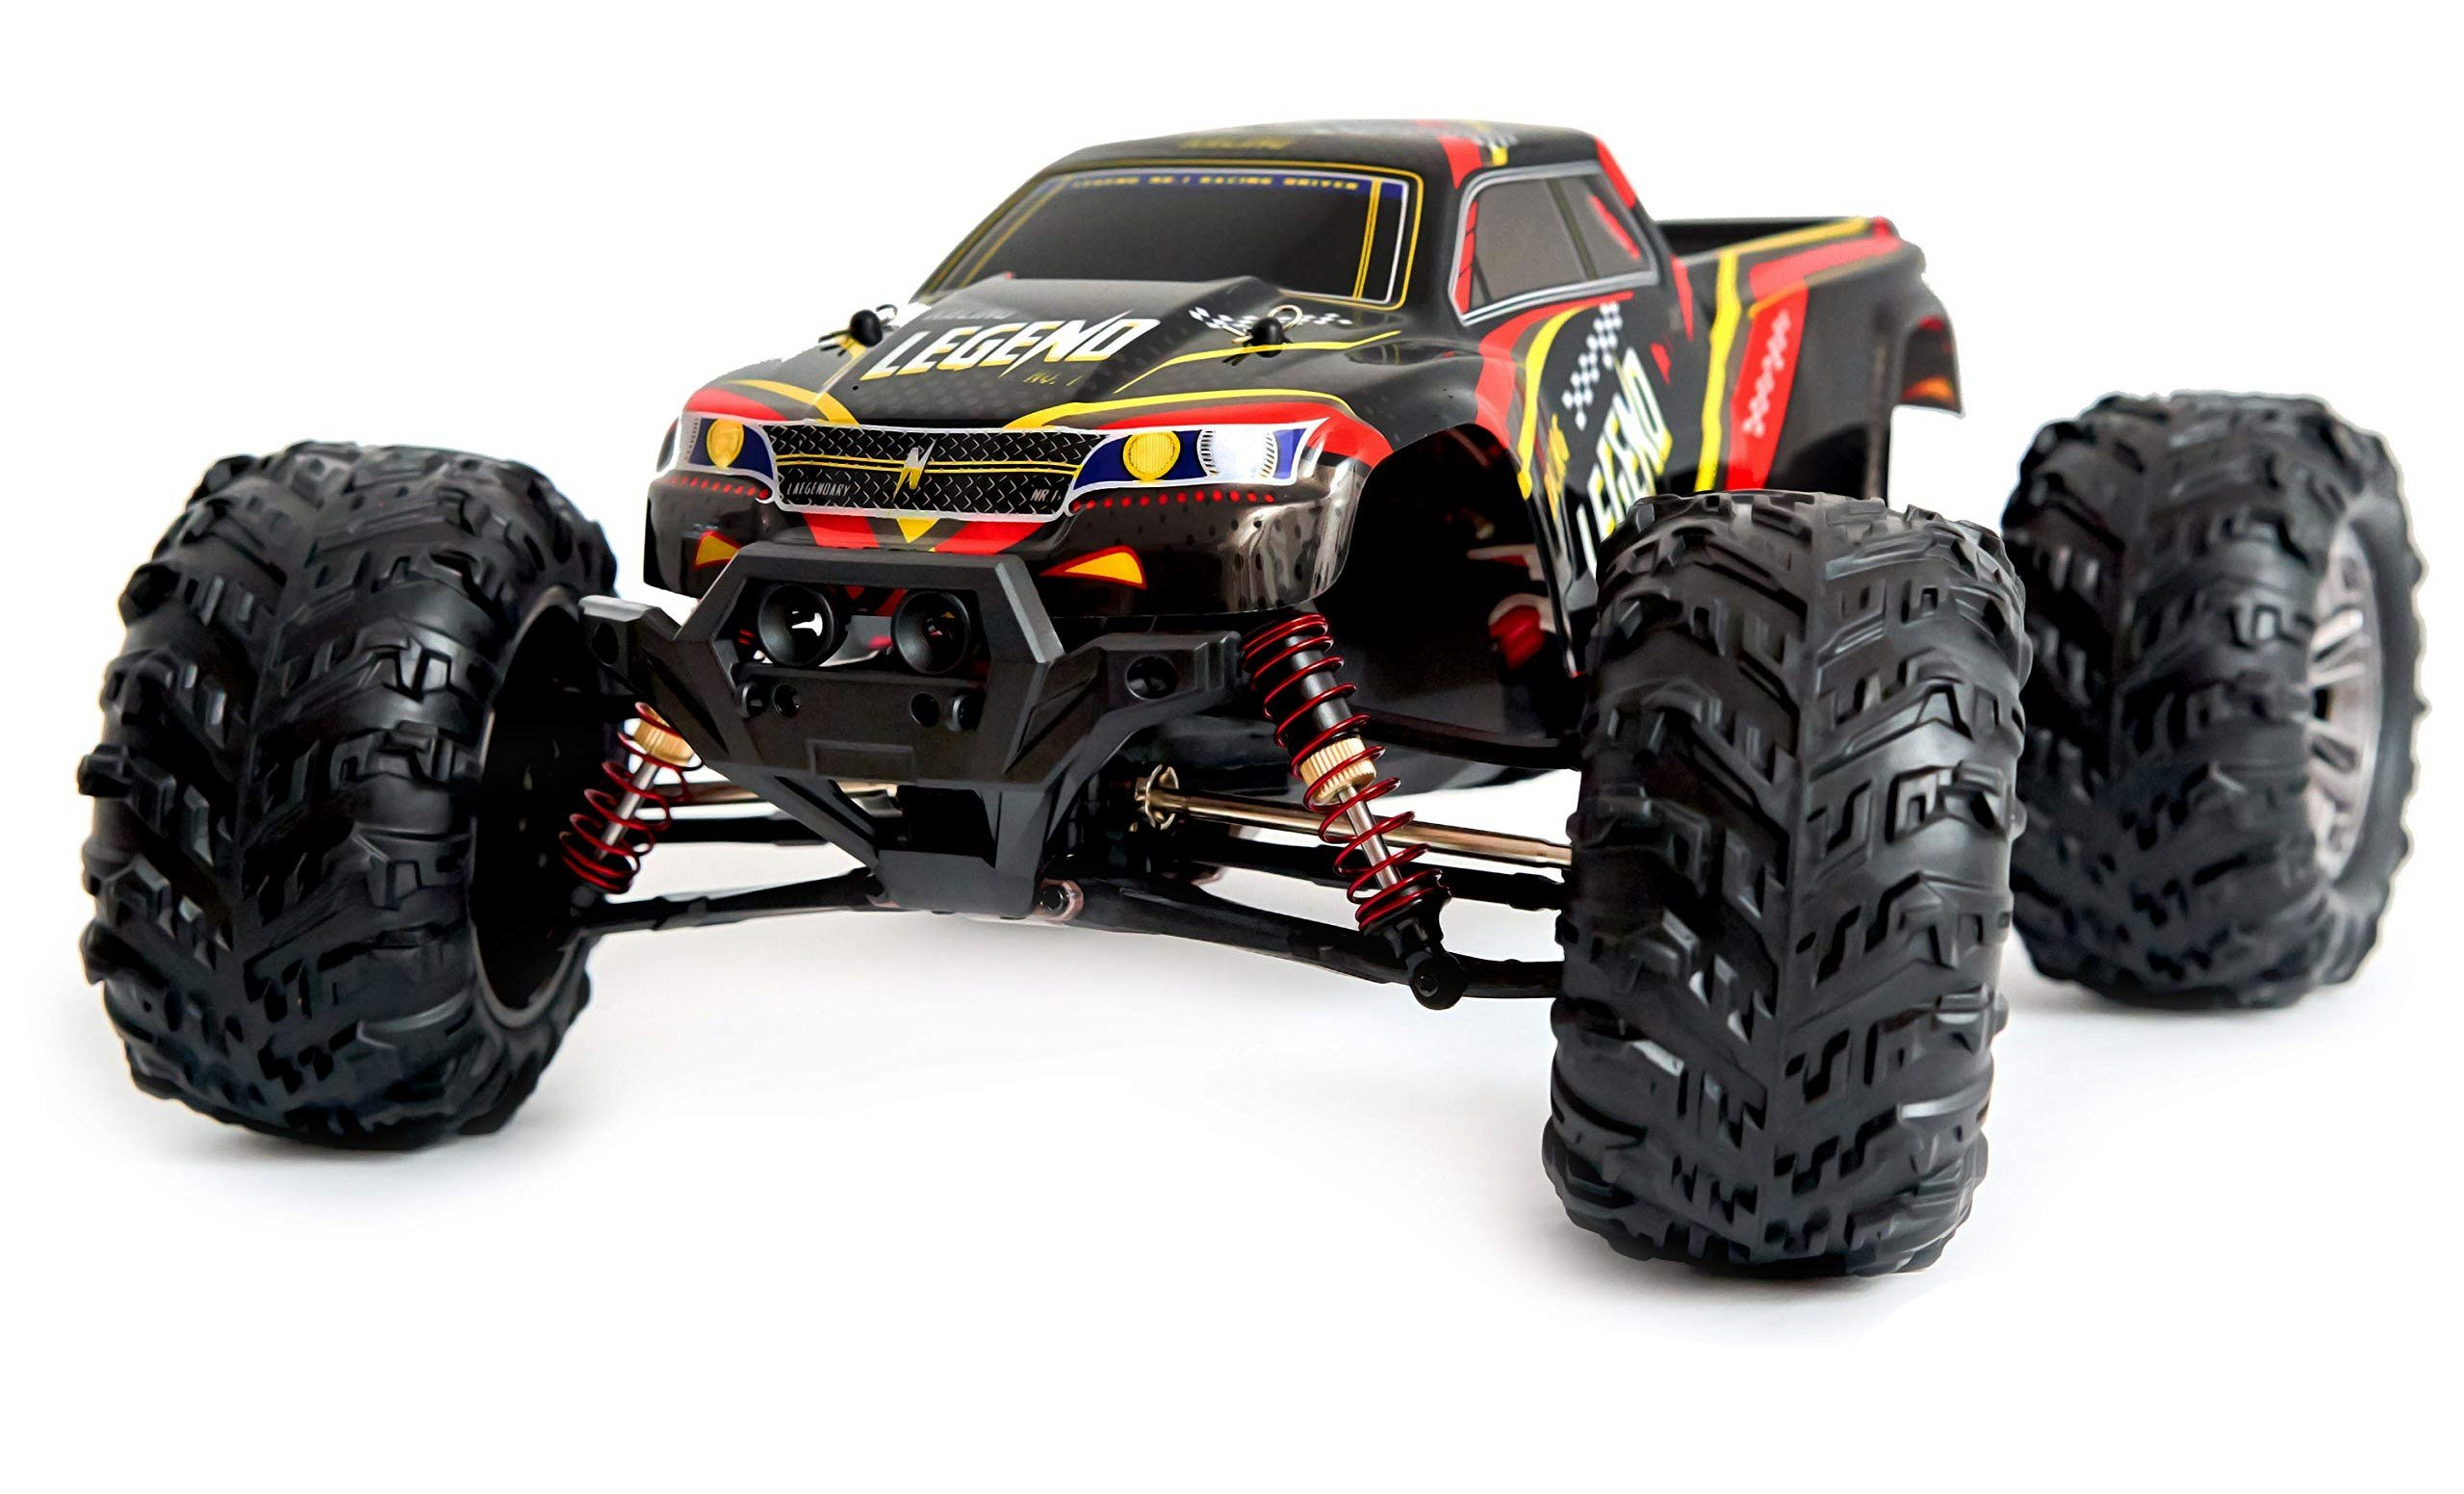 1:10 Scale Large RC Cars 48+ kmh Speed - Boys Remote Control Car 4x4 Off Road Monster Truck Electric review